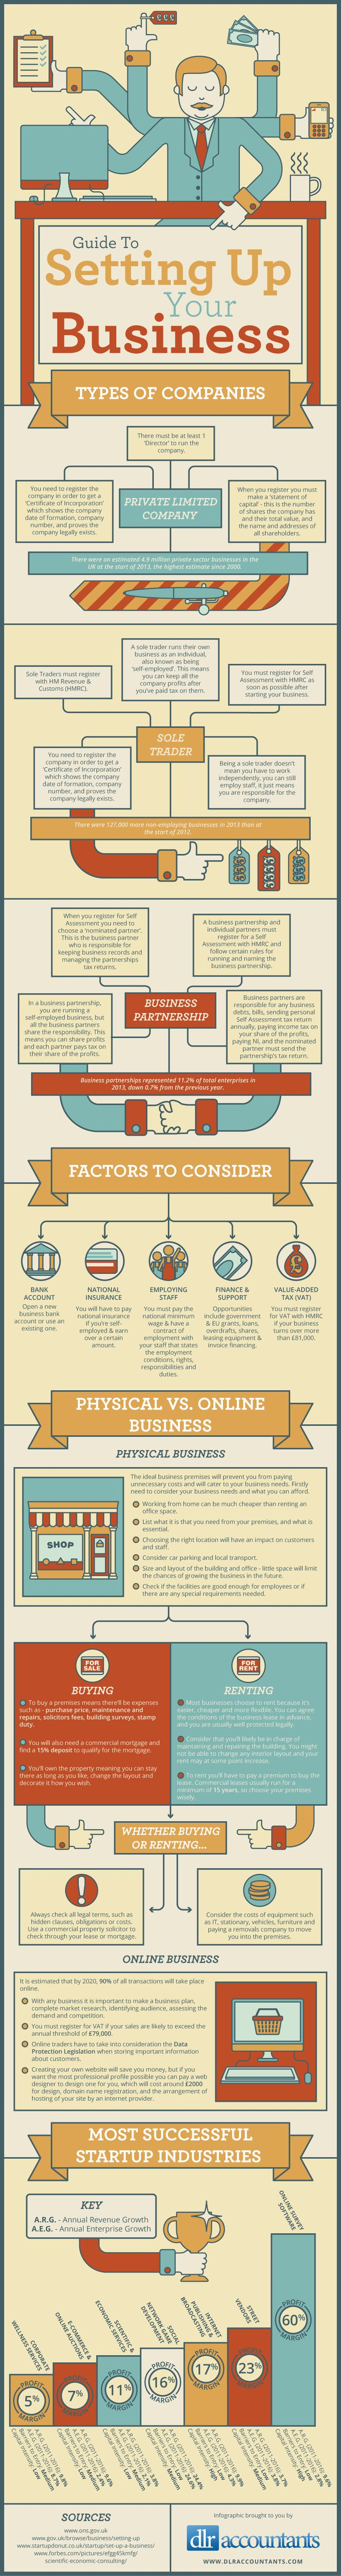 Guide To Setting Up Your Business #infographic #Business #Startup Checkout